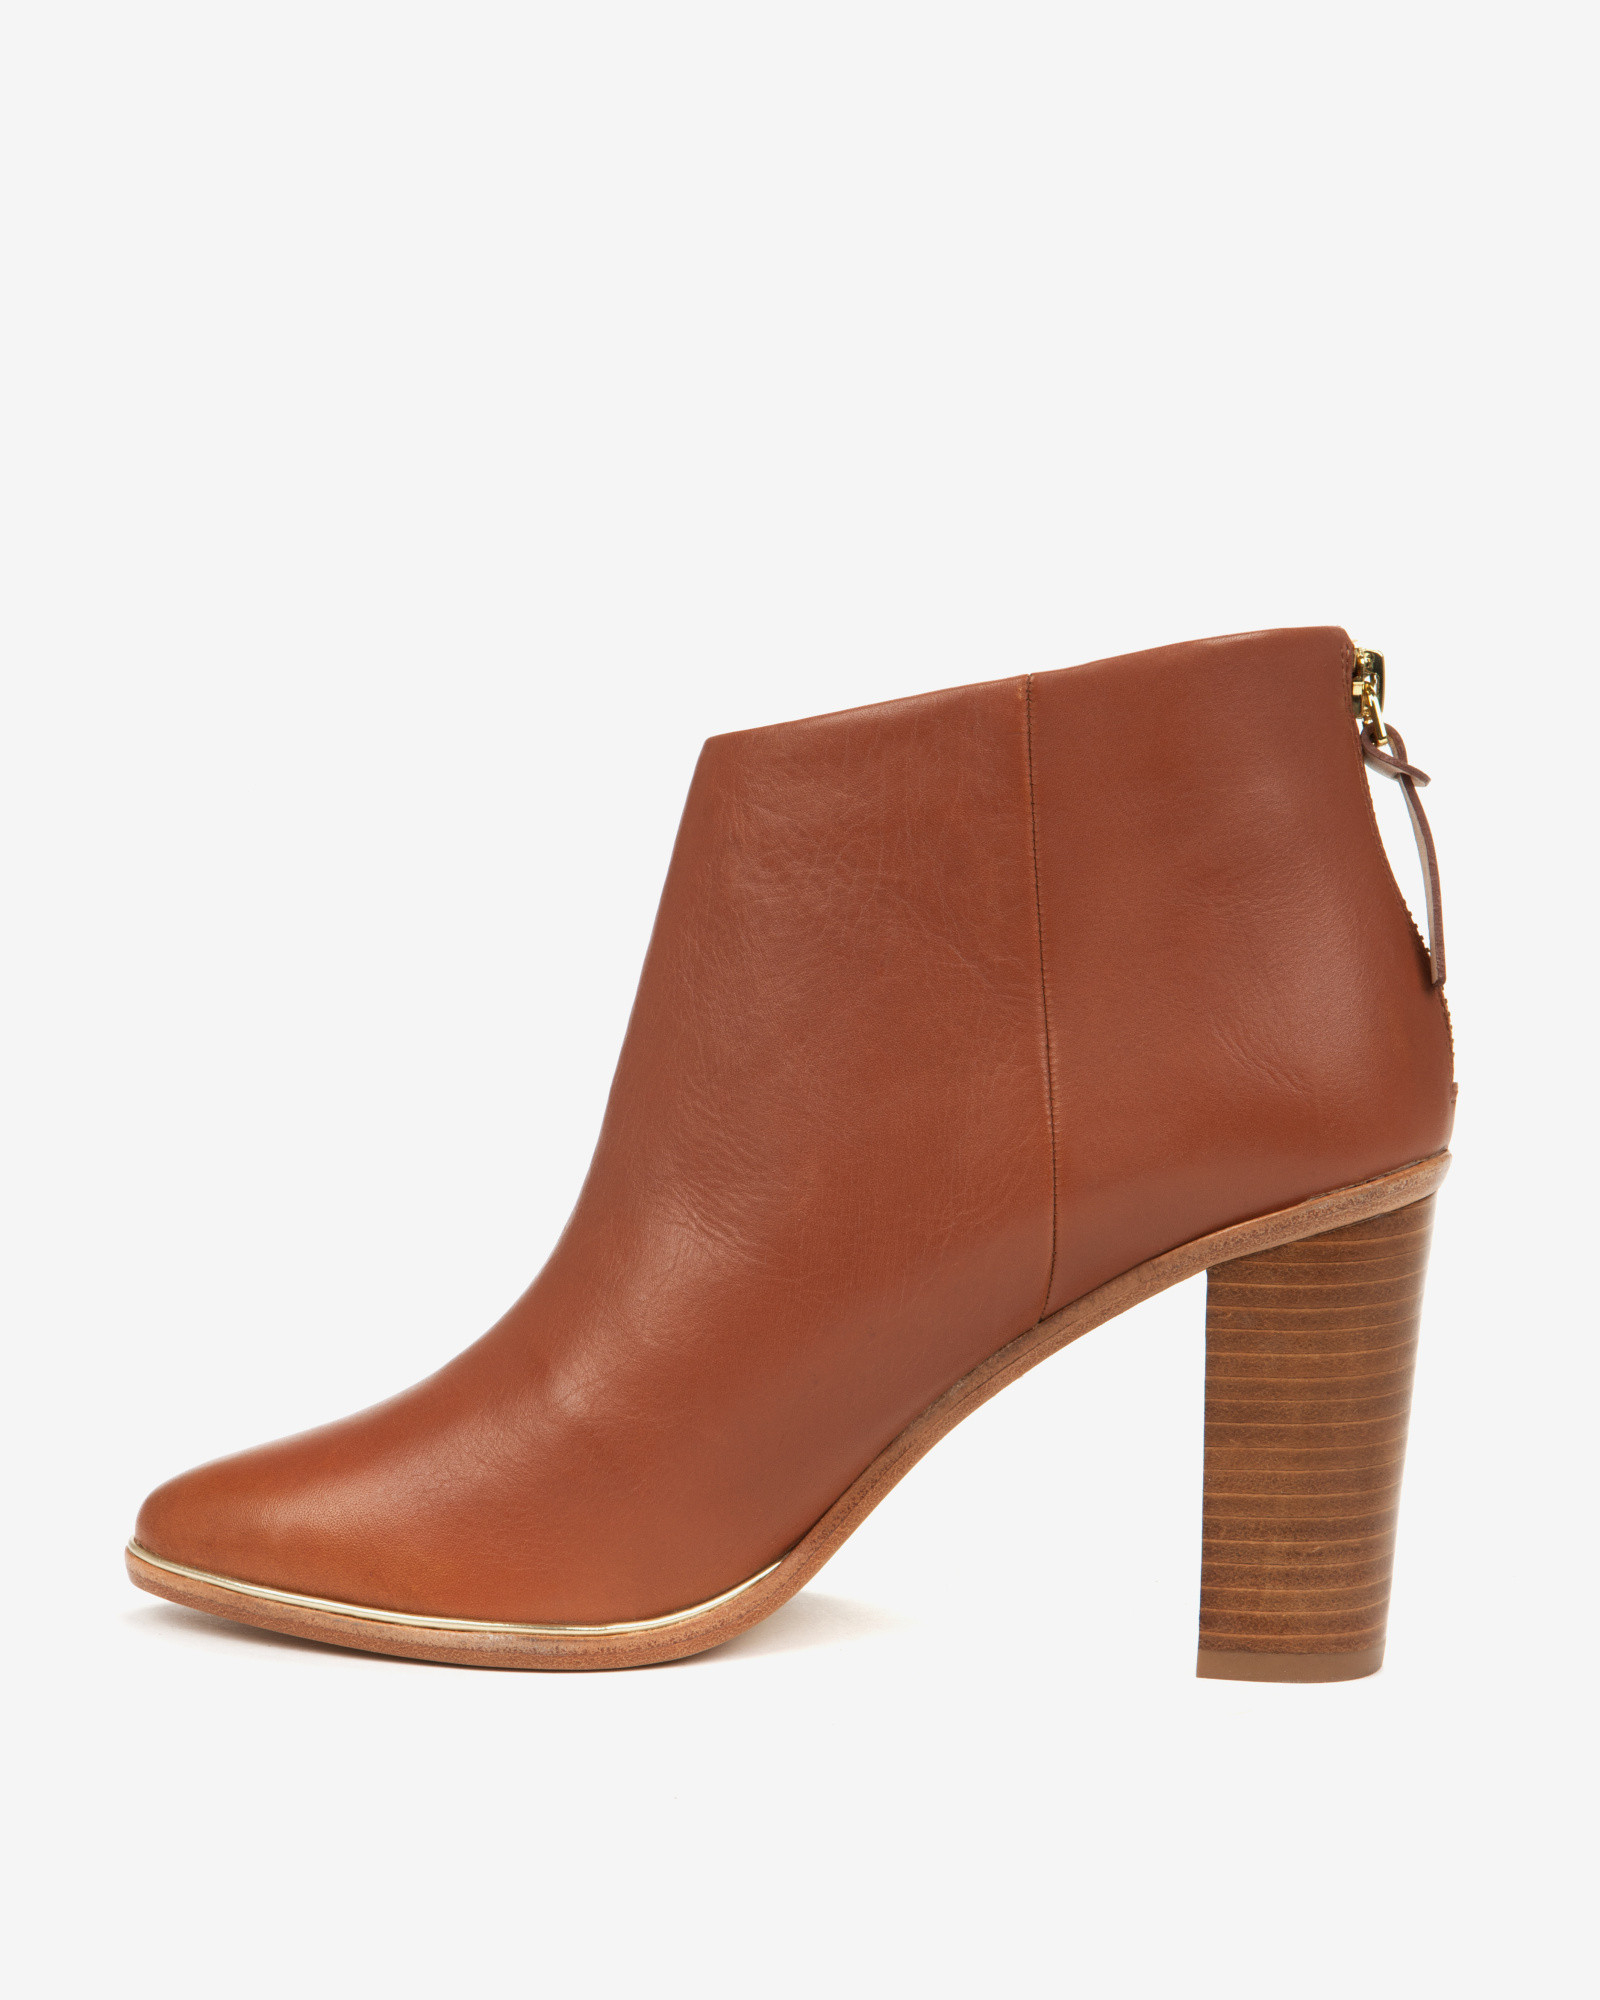 00832536ae33 Lyst - Ted Baker Leather Ankle Boots in Brown